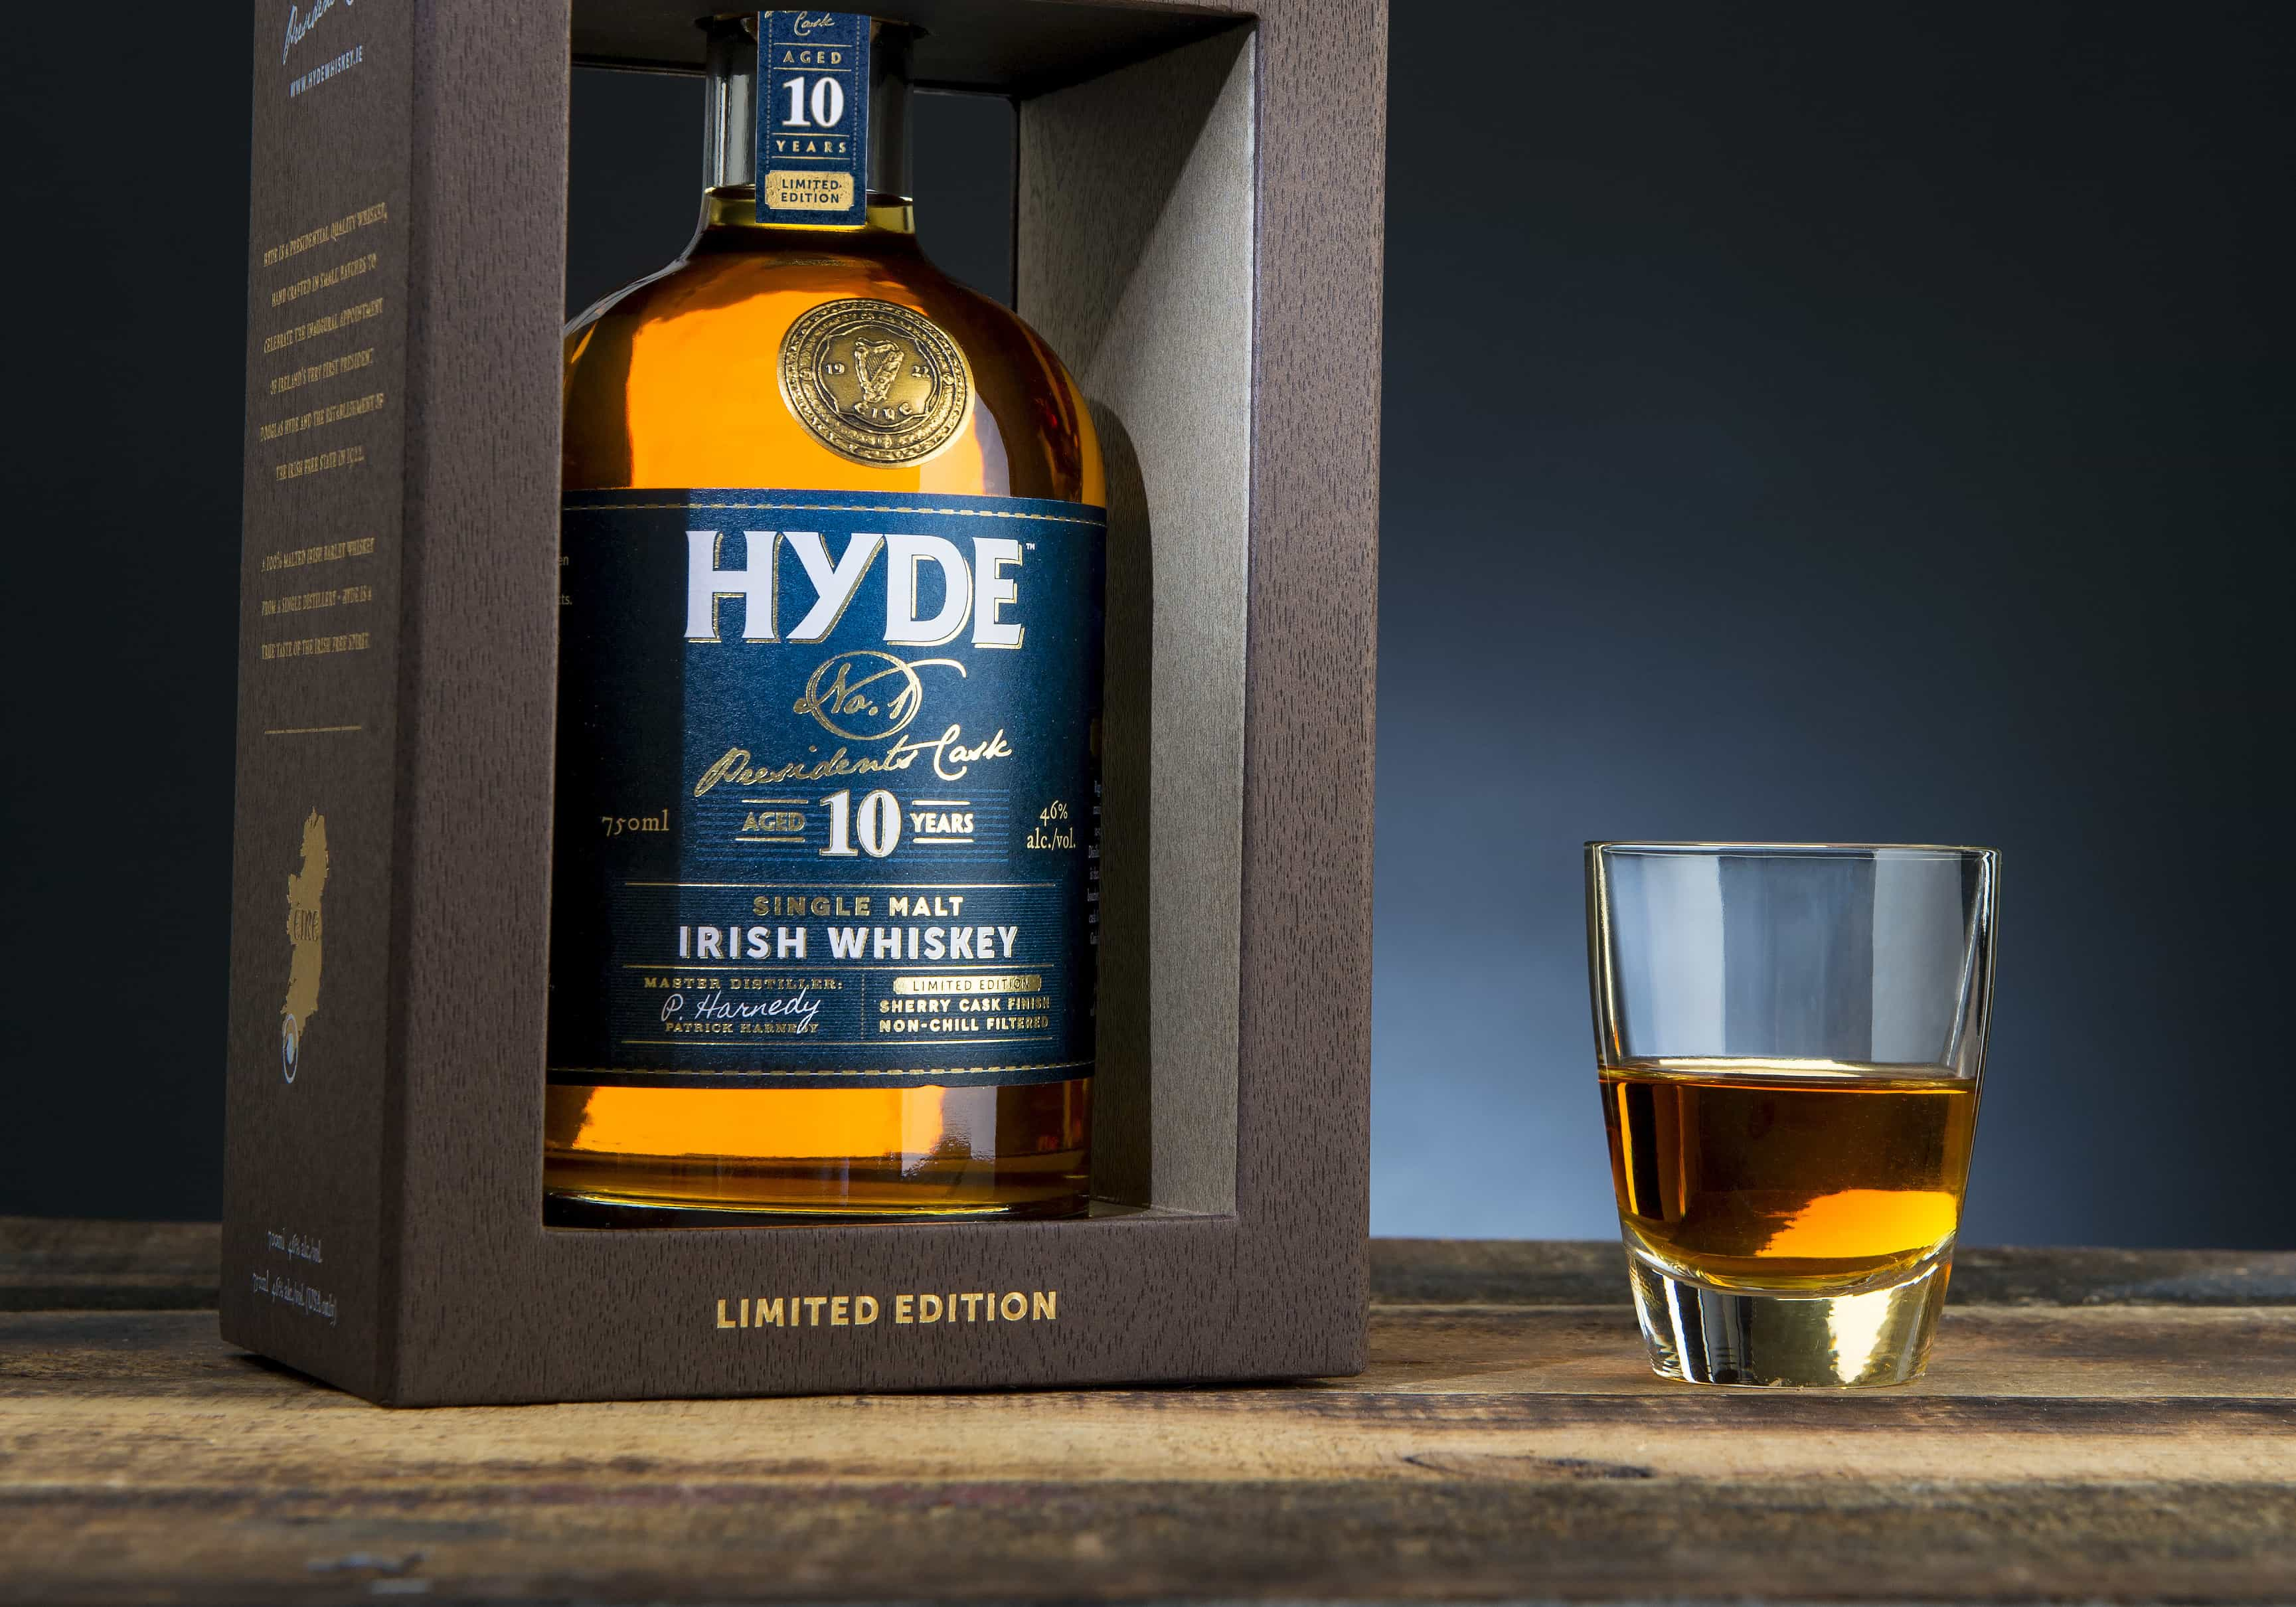 hyde 10 year old single malt